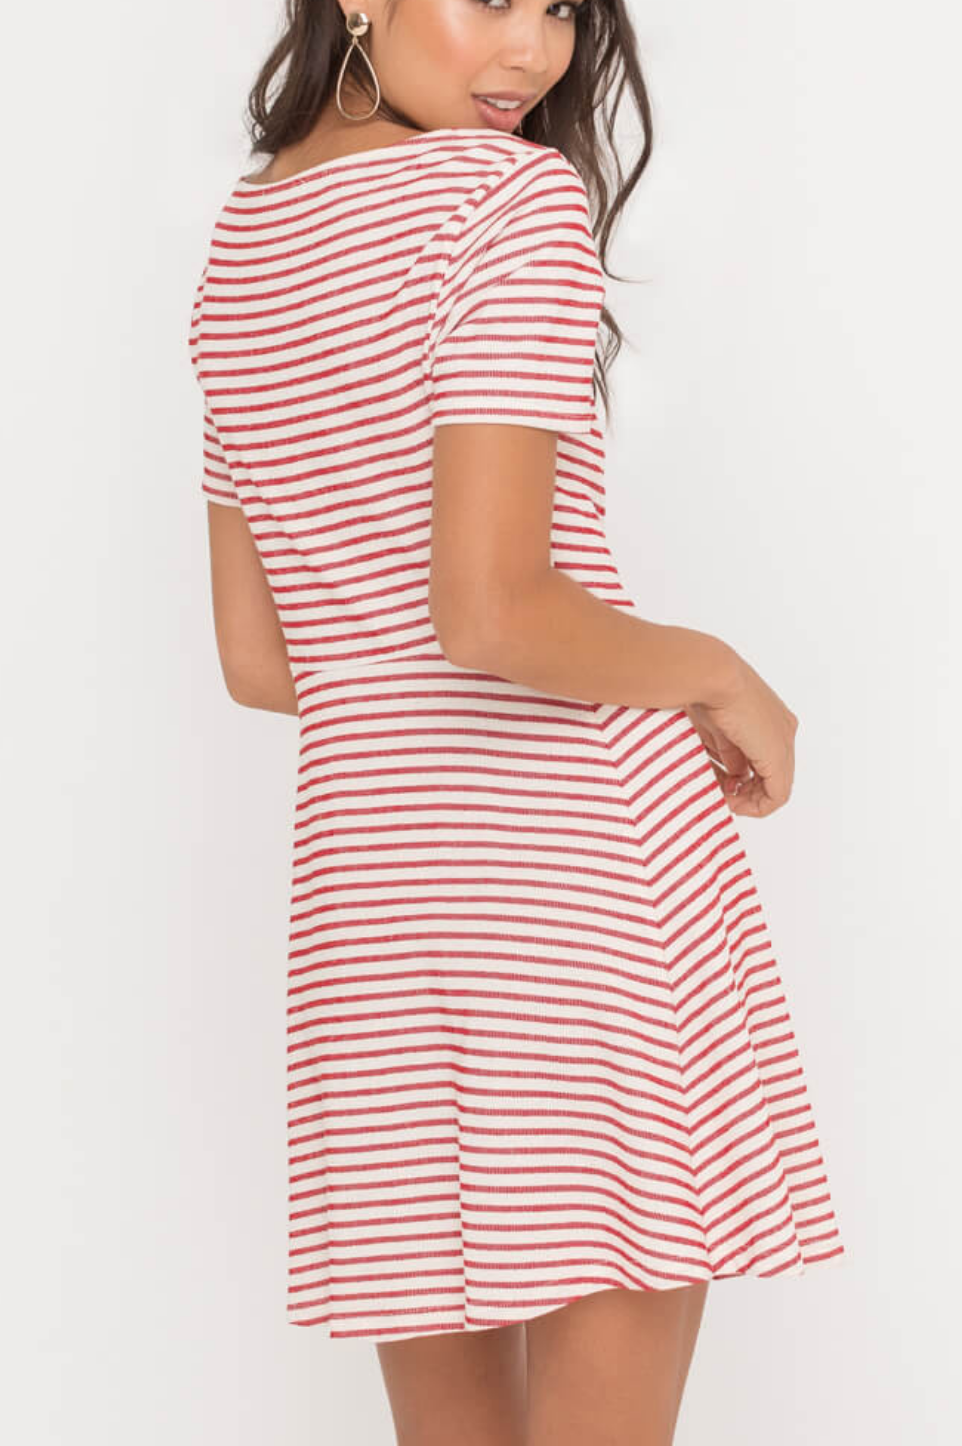 Lush Stripe of Life Dress